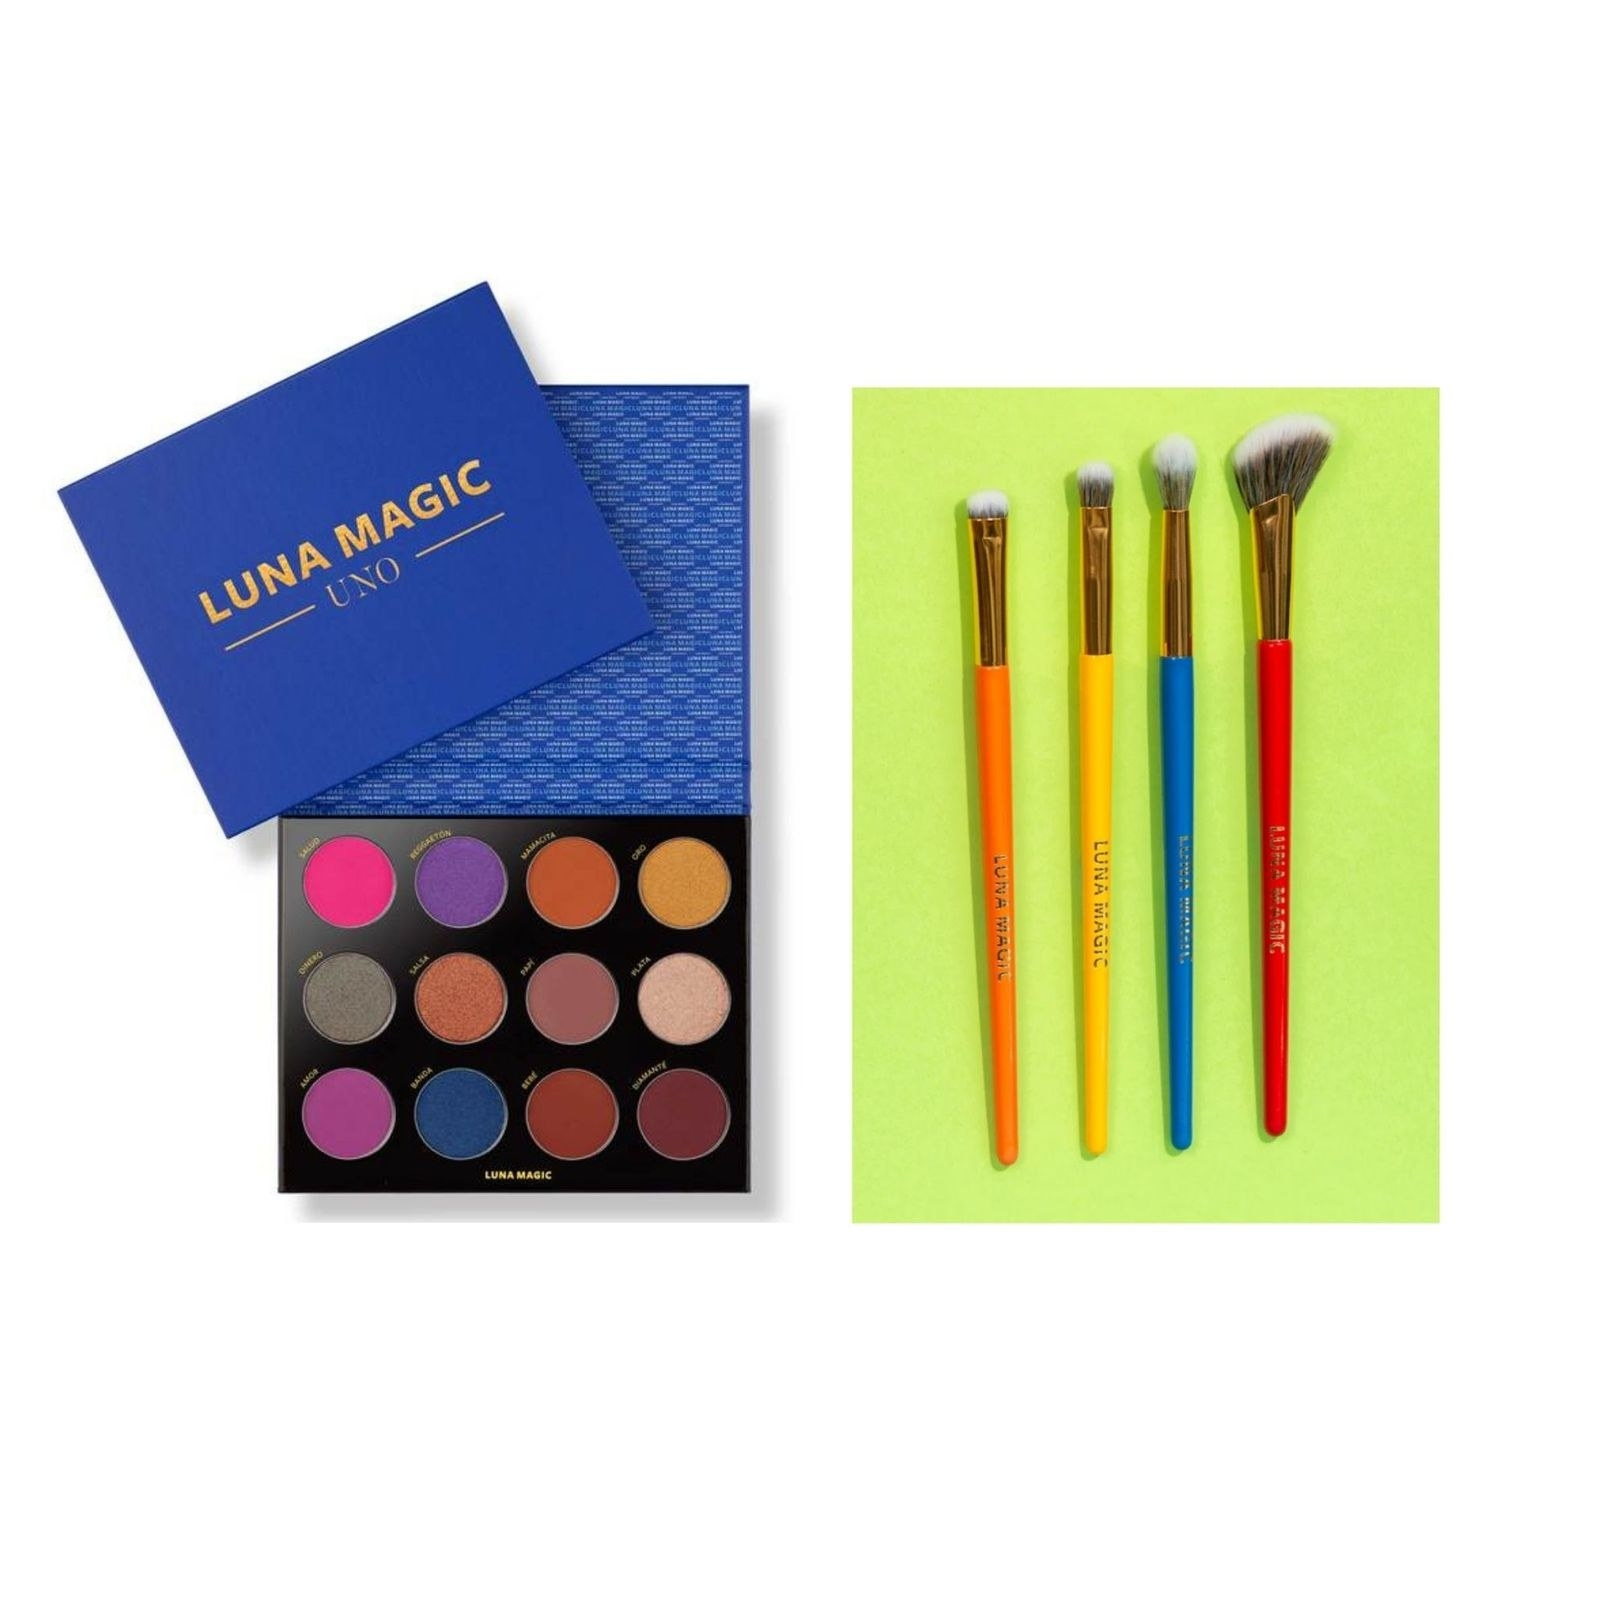 The Luna Magic Uno eyeshadow palette with 12 shades and a set of four brushes